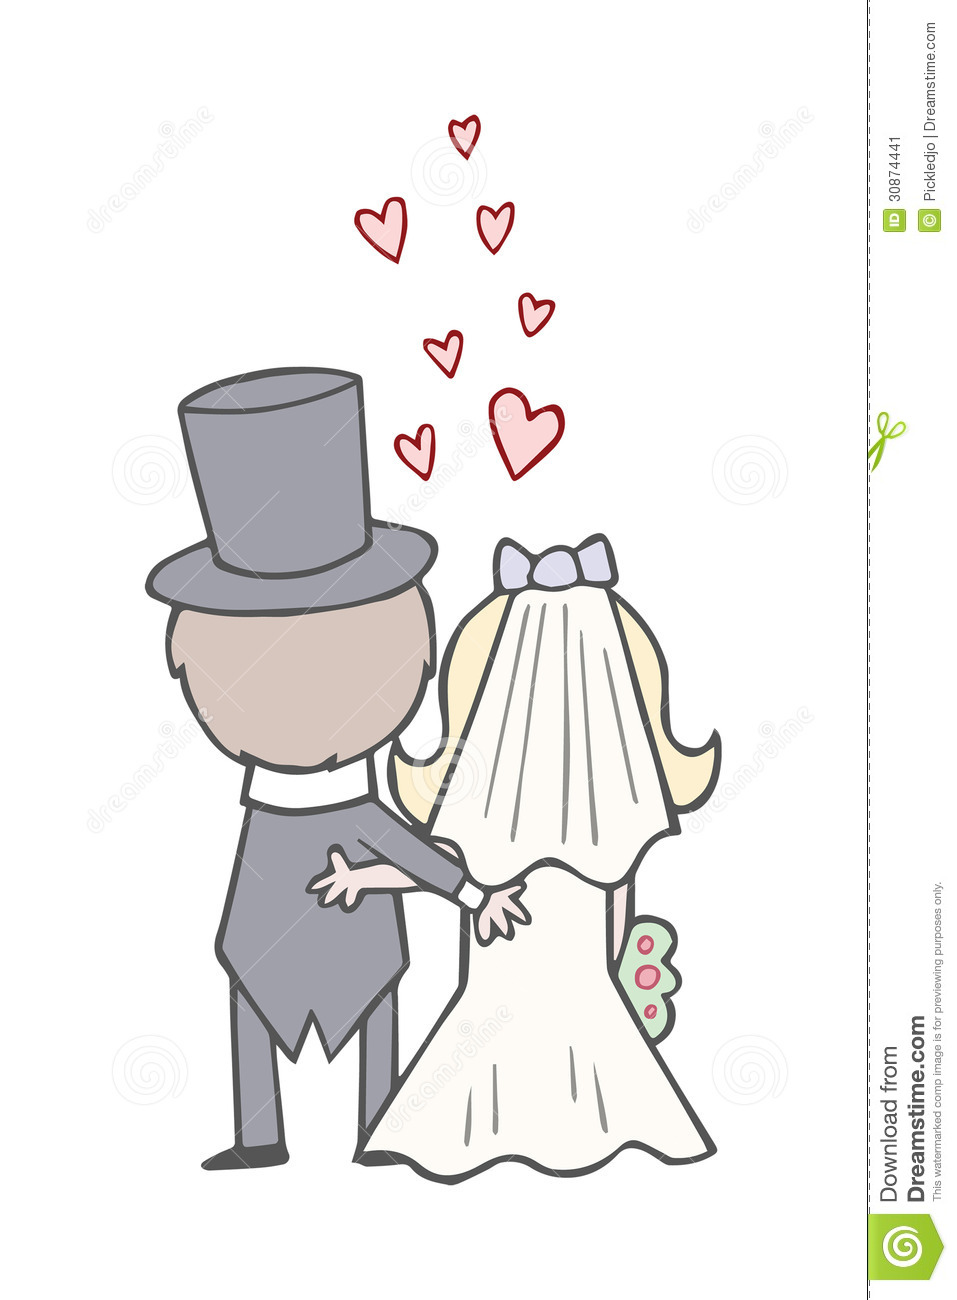 Cute Bride And Groom Clipart # .-Cute Bride And Groom Clipart # .-14